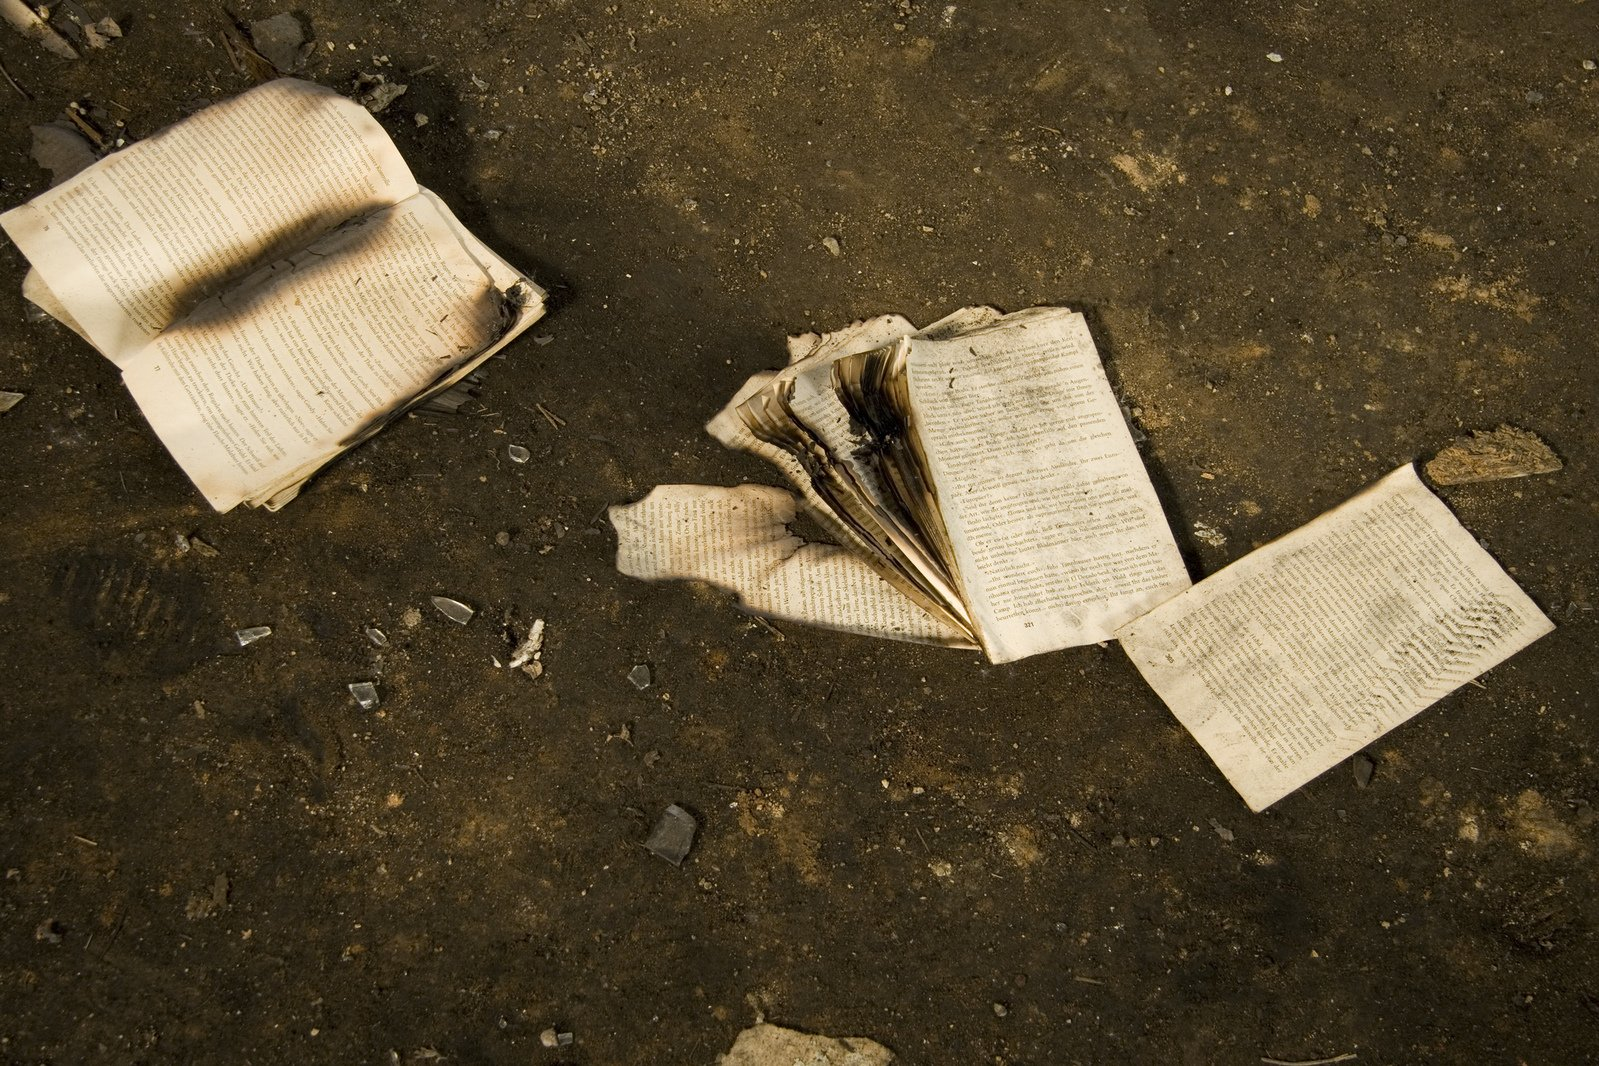 Burned Book, Scattered Pages, Wisdom, Lies